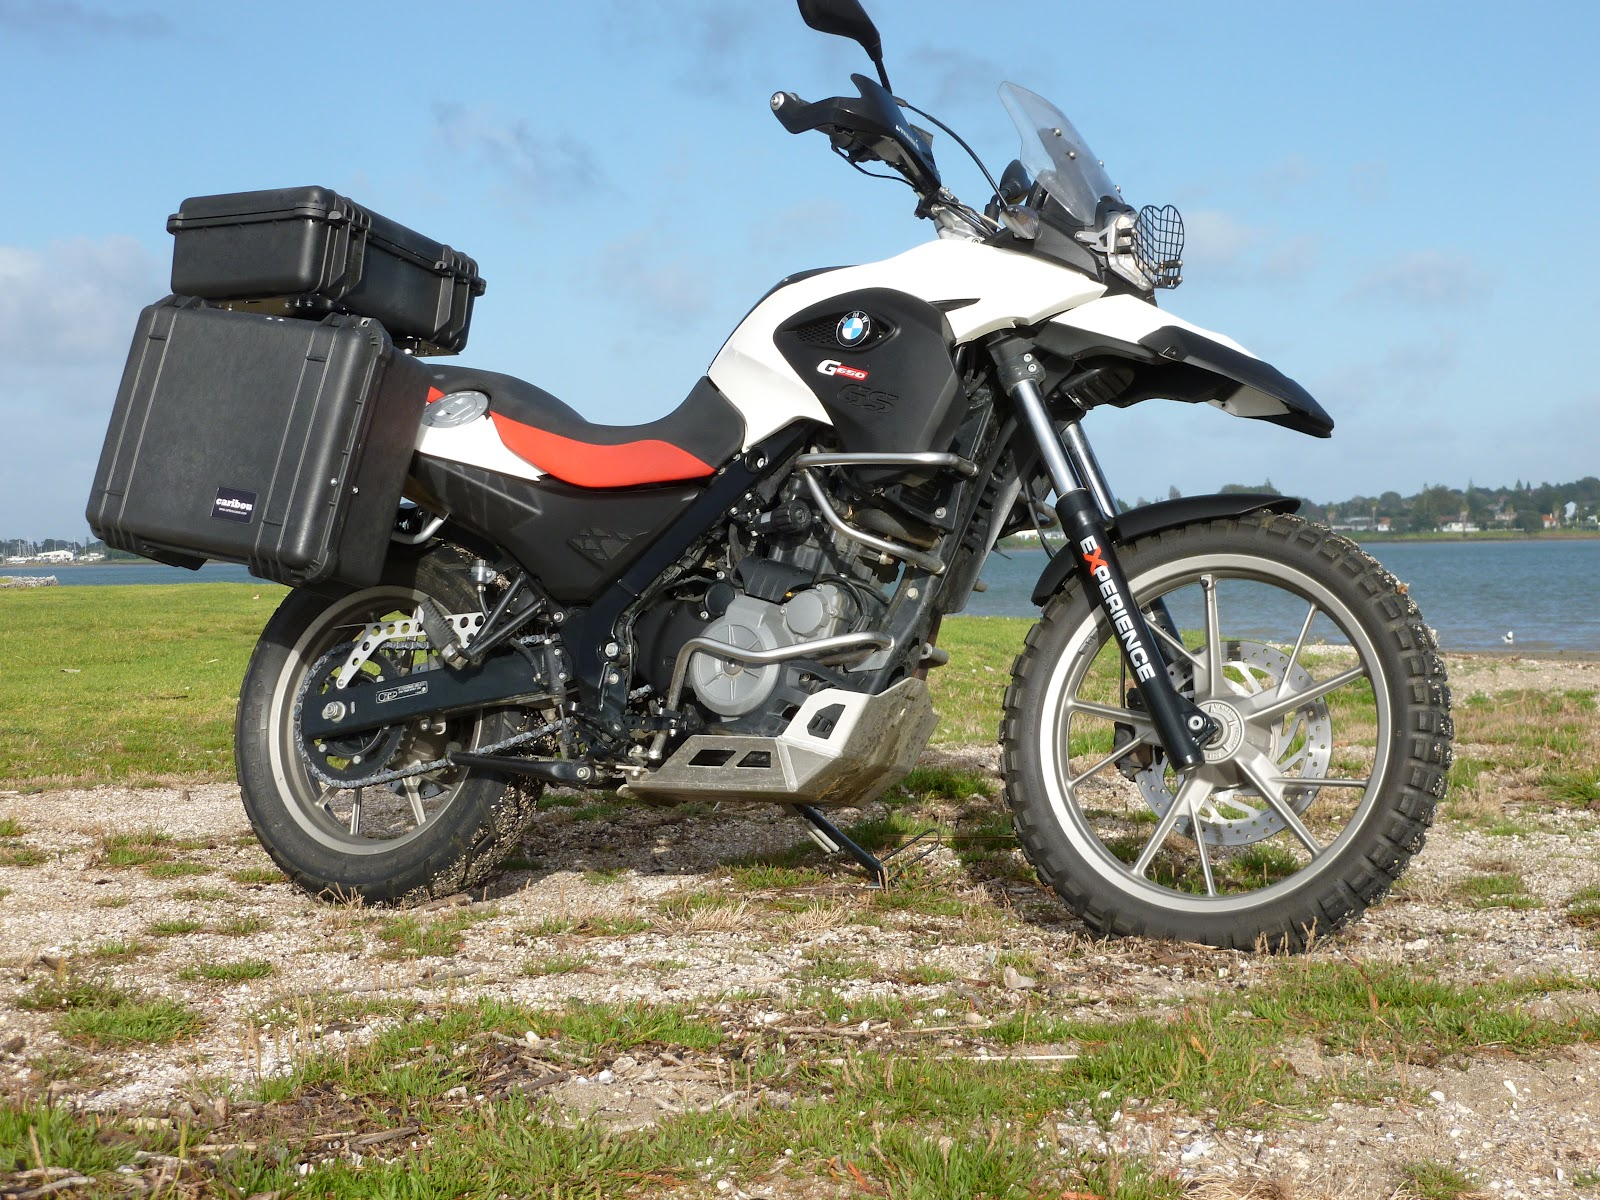 All Things Rogey!: BMW G650gs 10000km review and bling